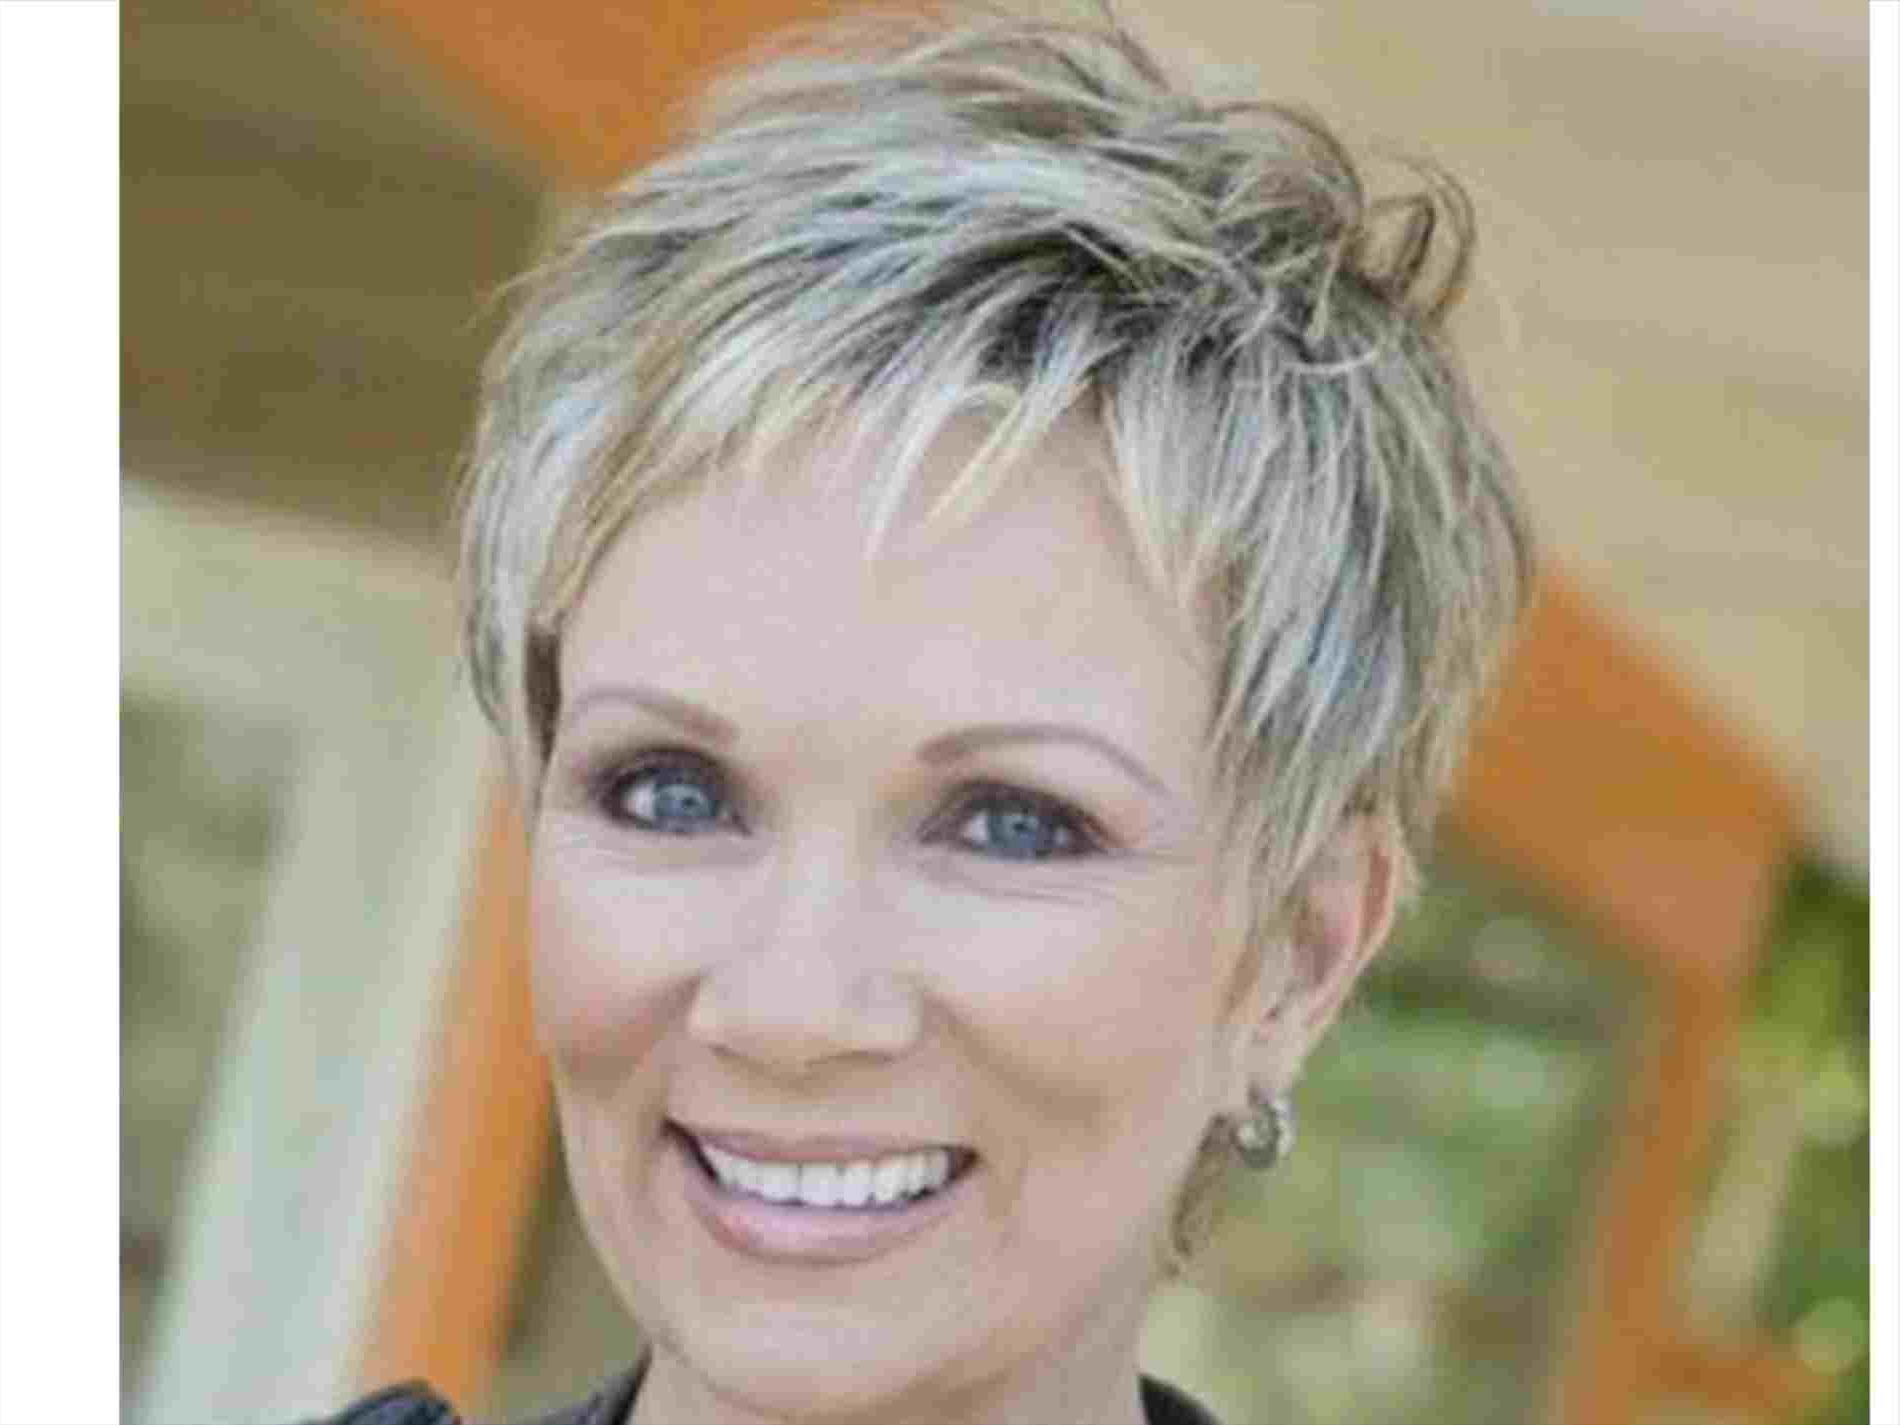 Hairstyle Thin And Rhnewhairstylegallerycom Best Short Haircuts For Pertaining To Medium To Short Haircuts For Thin Hair (View 24 of 25)